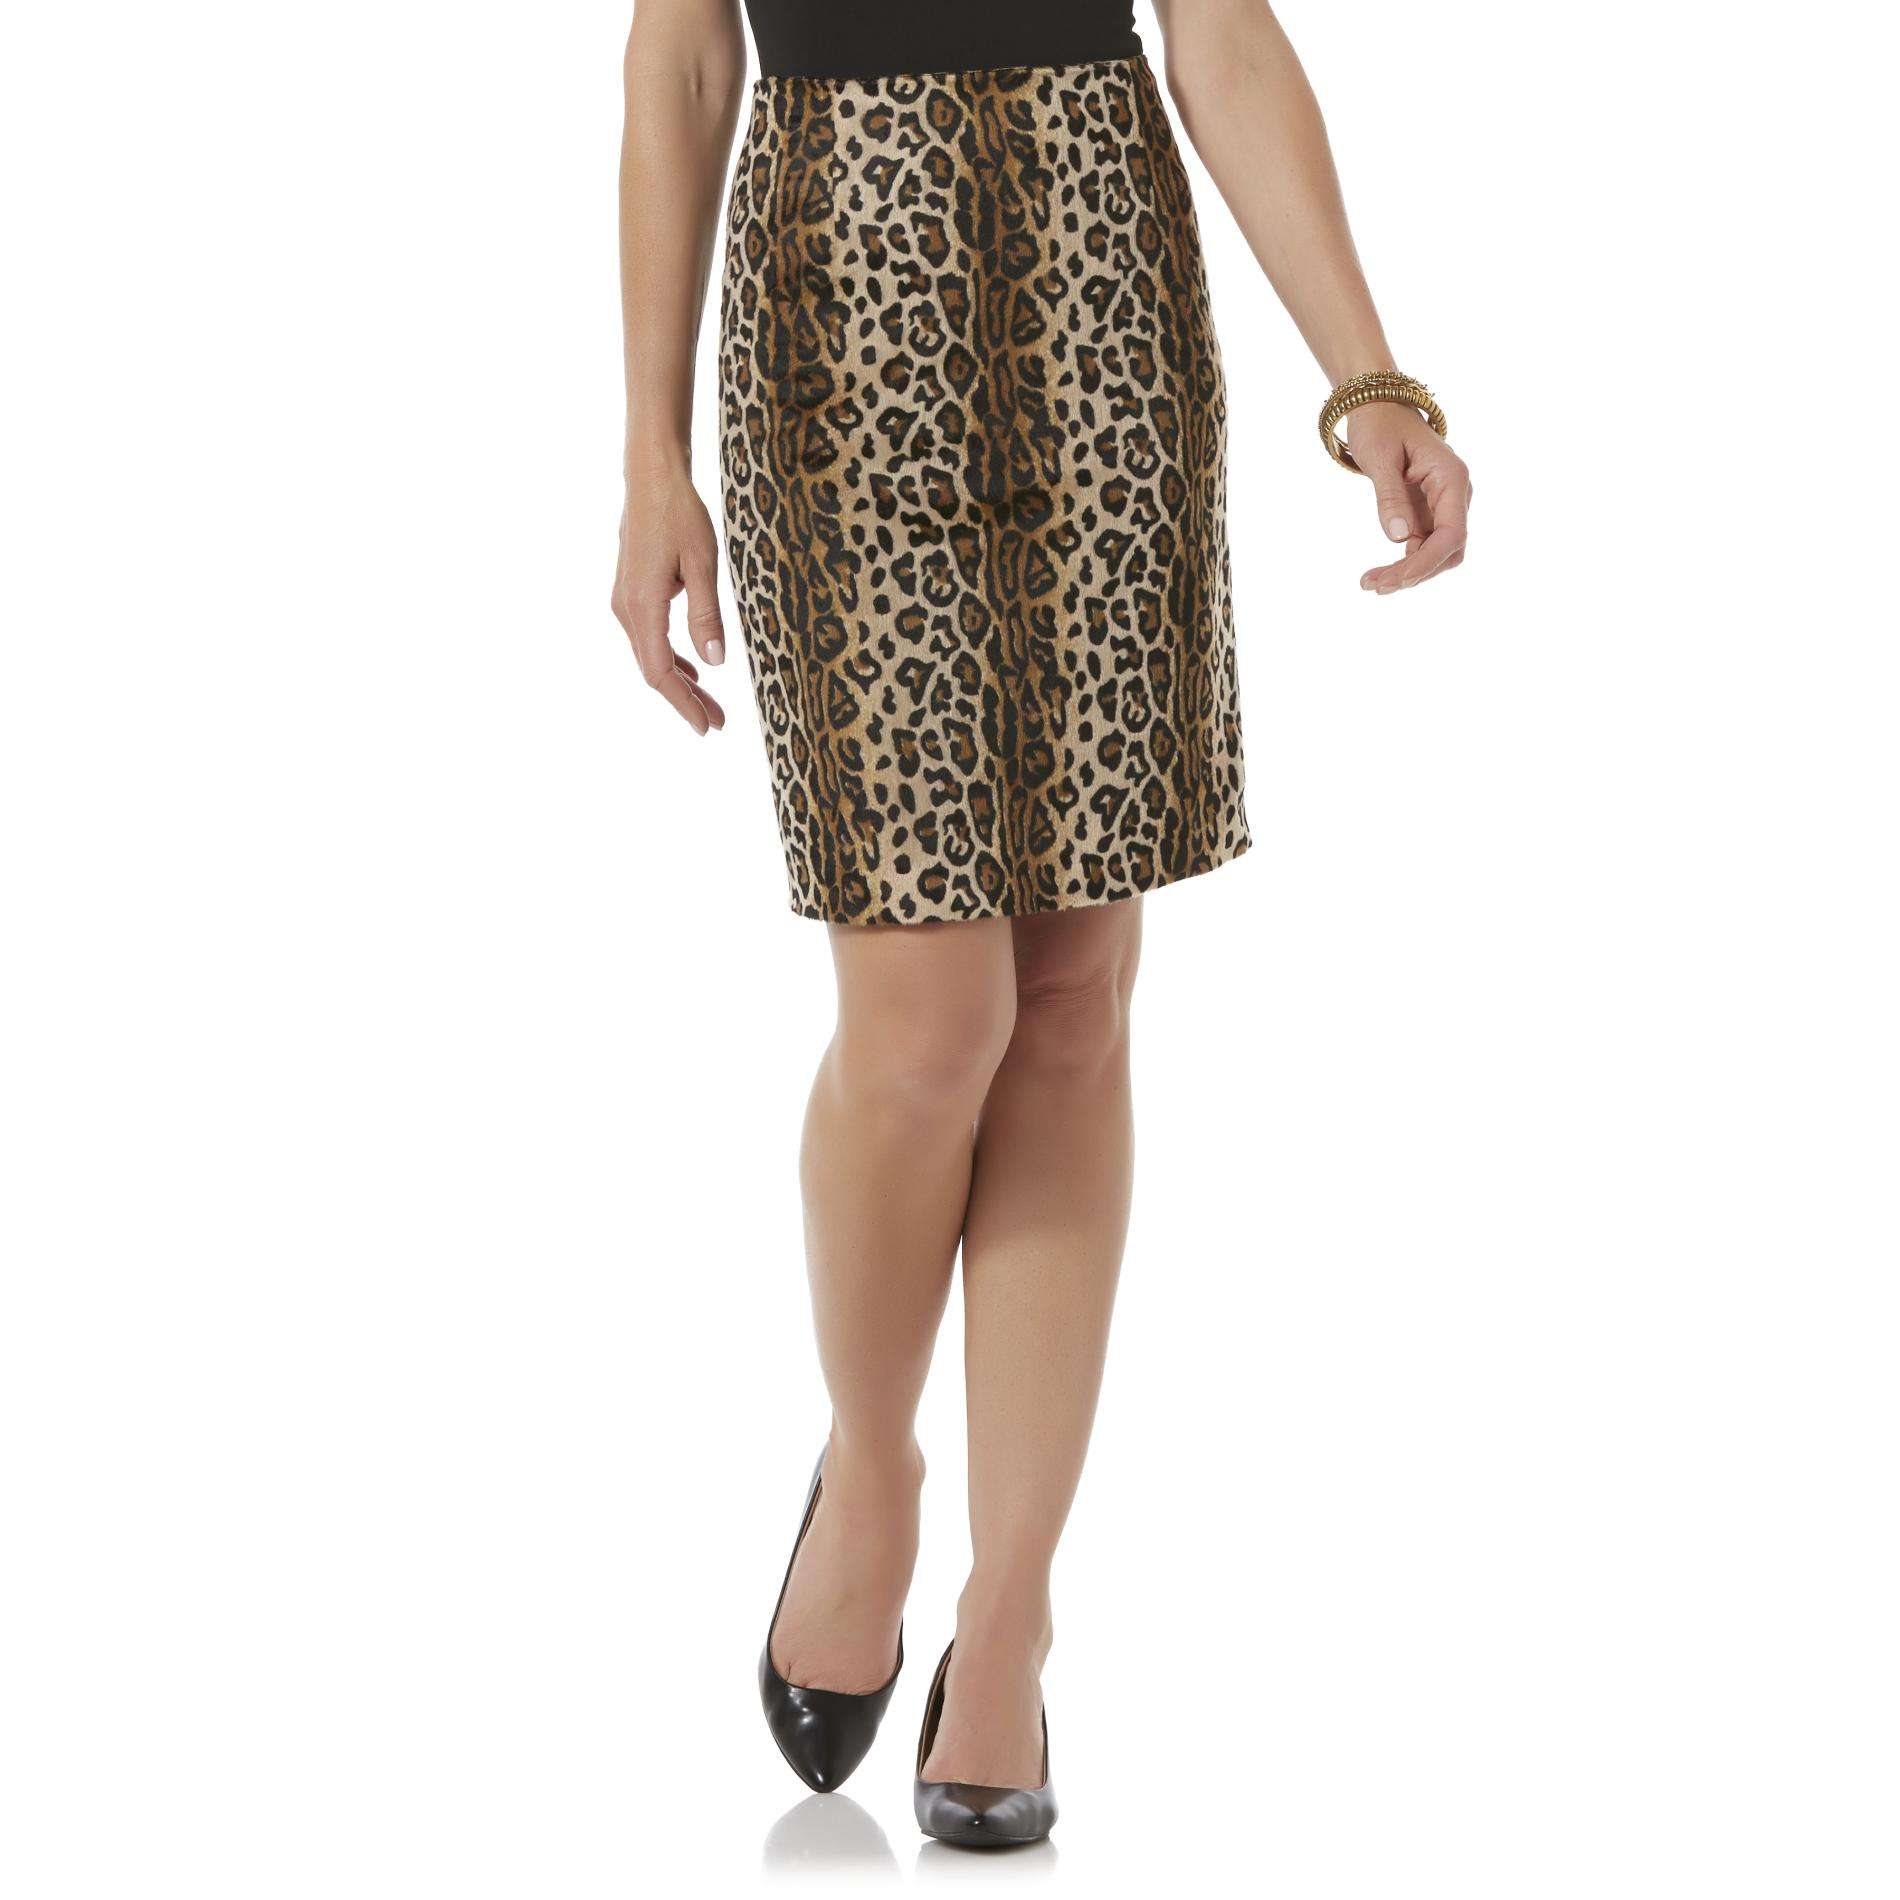 School Skirts Kmart Jaclyn Smith Women 39s Faux Fur Pencil Skirt Leopard Print